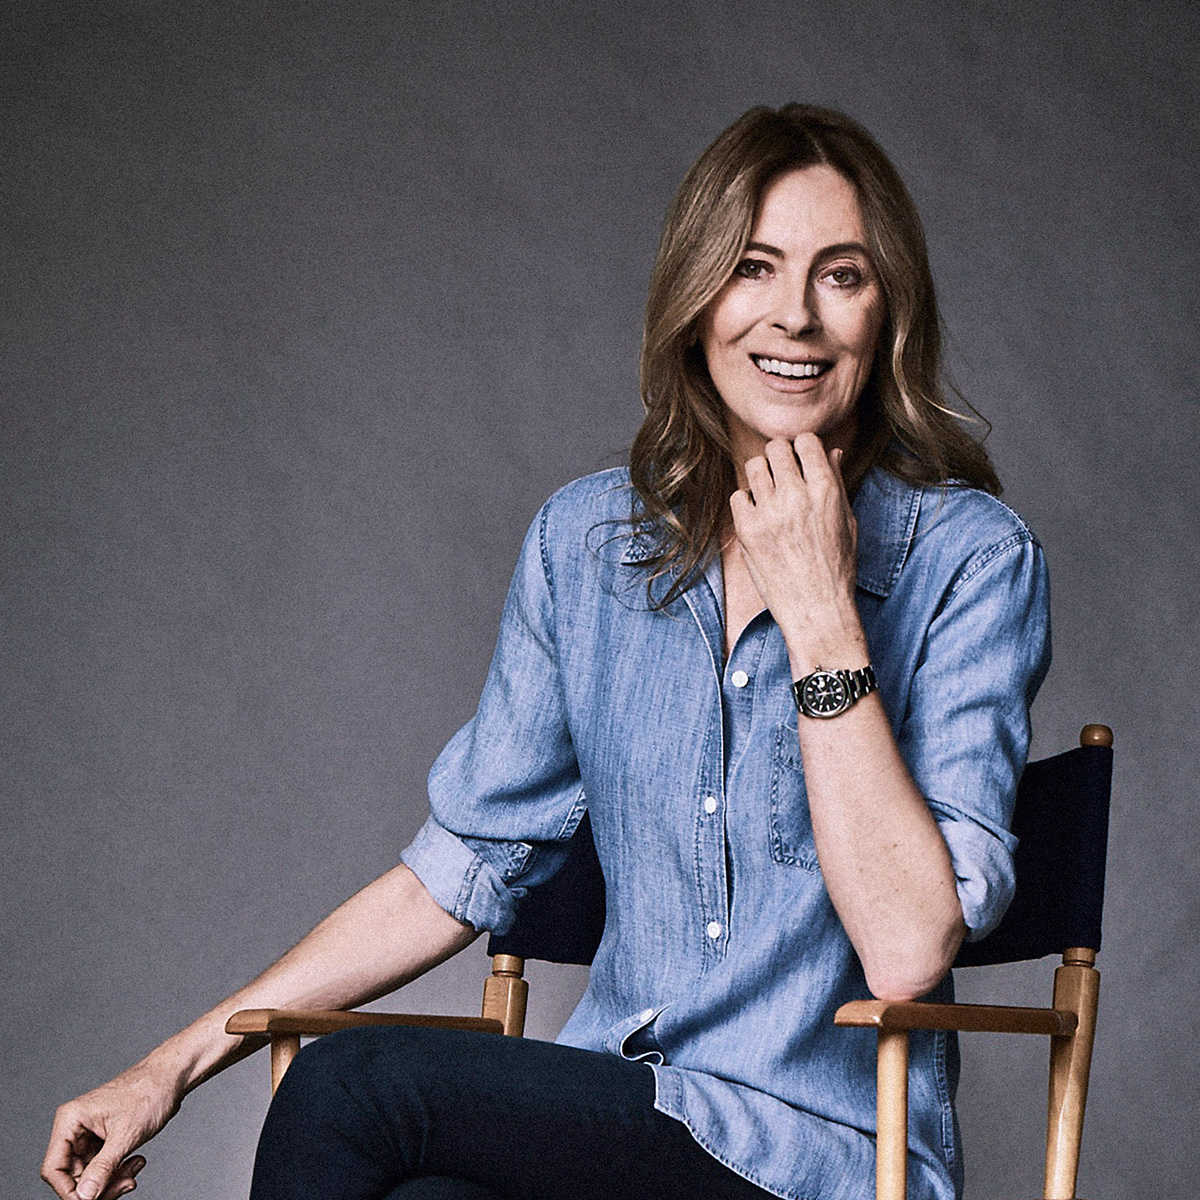 KATHERYN BIGELOW  The first and only woman to win an Academy Award for Best Director, Kathryn Bigelow's command of visual narrative, her tenacity and her choice of subjects that have the ability to provoke change, have redefined the landscape of cinema today.